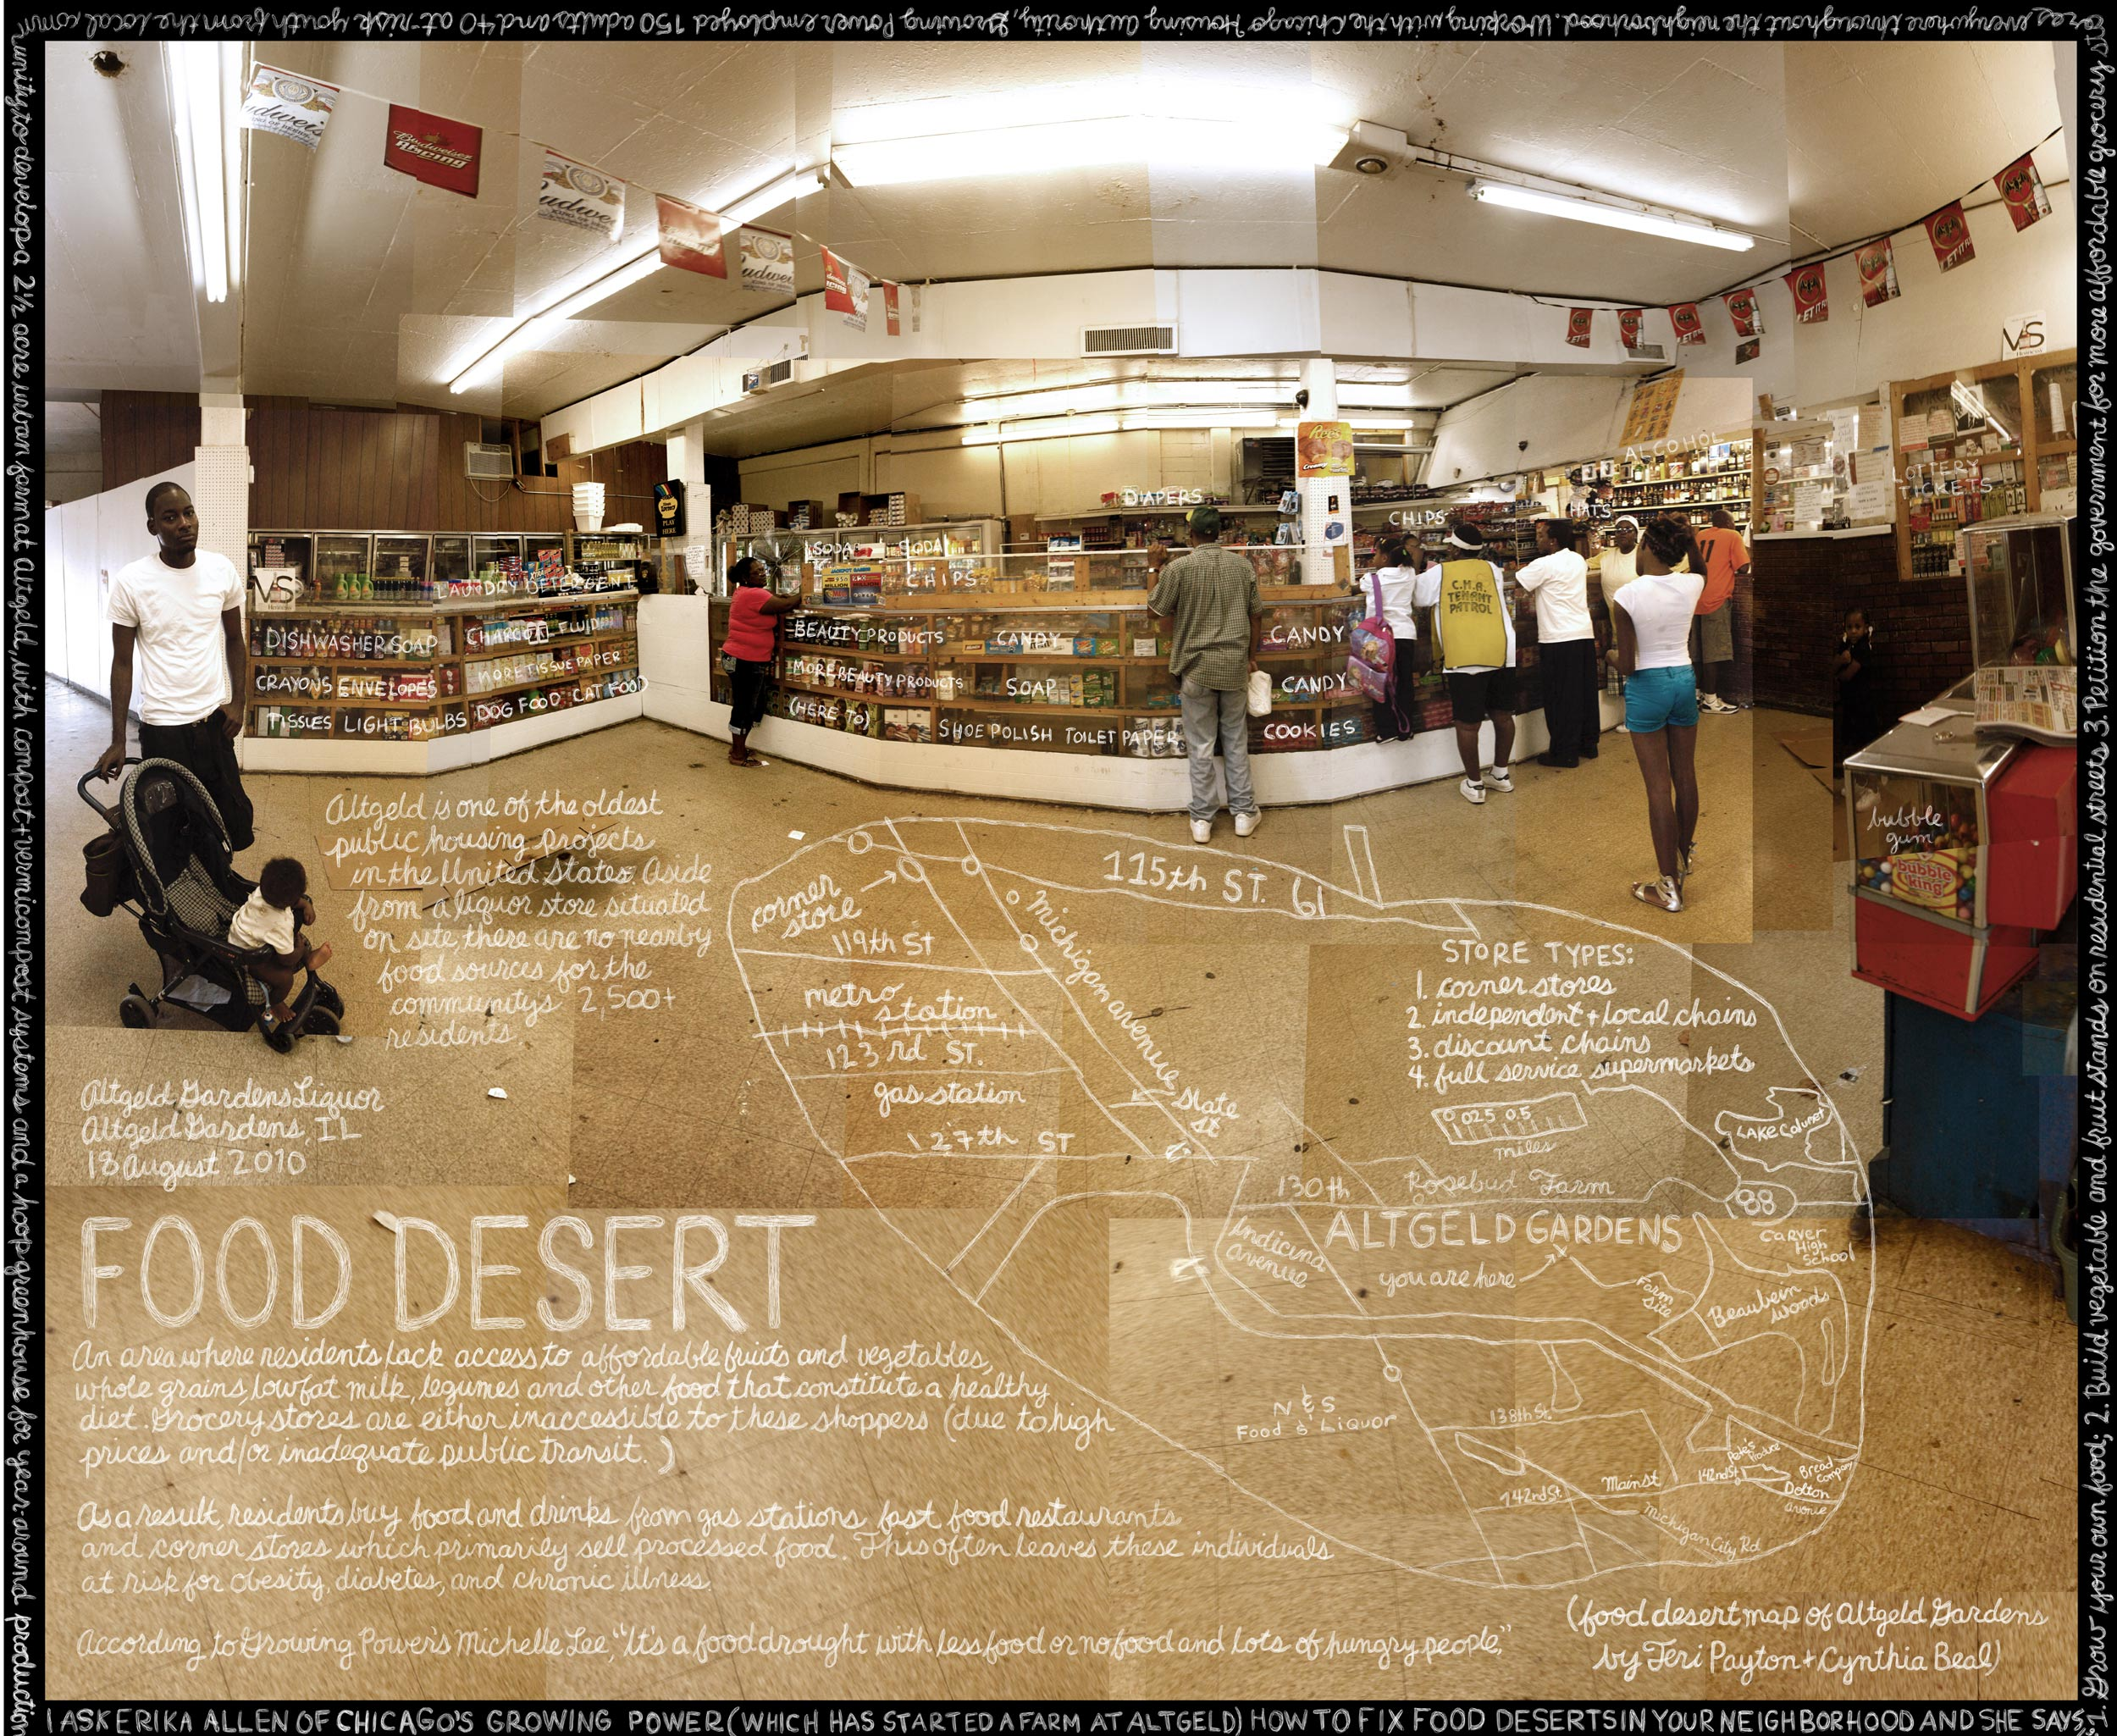 'Food Desert' Altgeld Gardens Liquors, Altgeld Gardens, IL. Credit: Information artwork by Douglas Gayeton. From the Lexicon of Sustainability project.